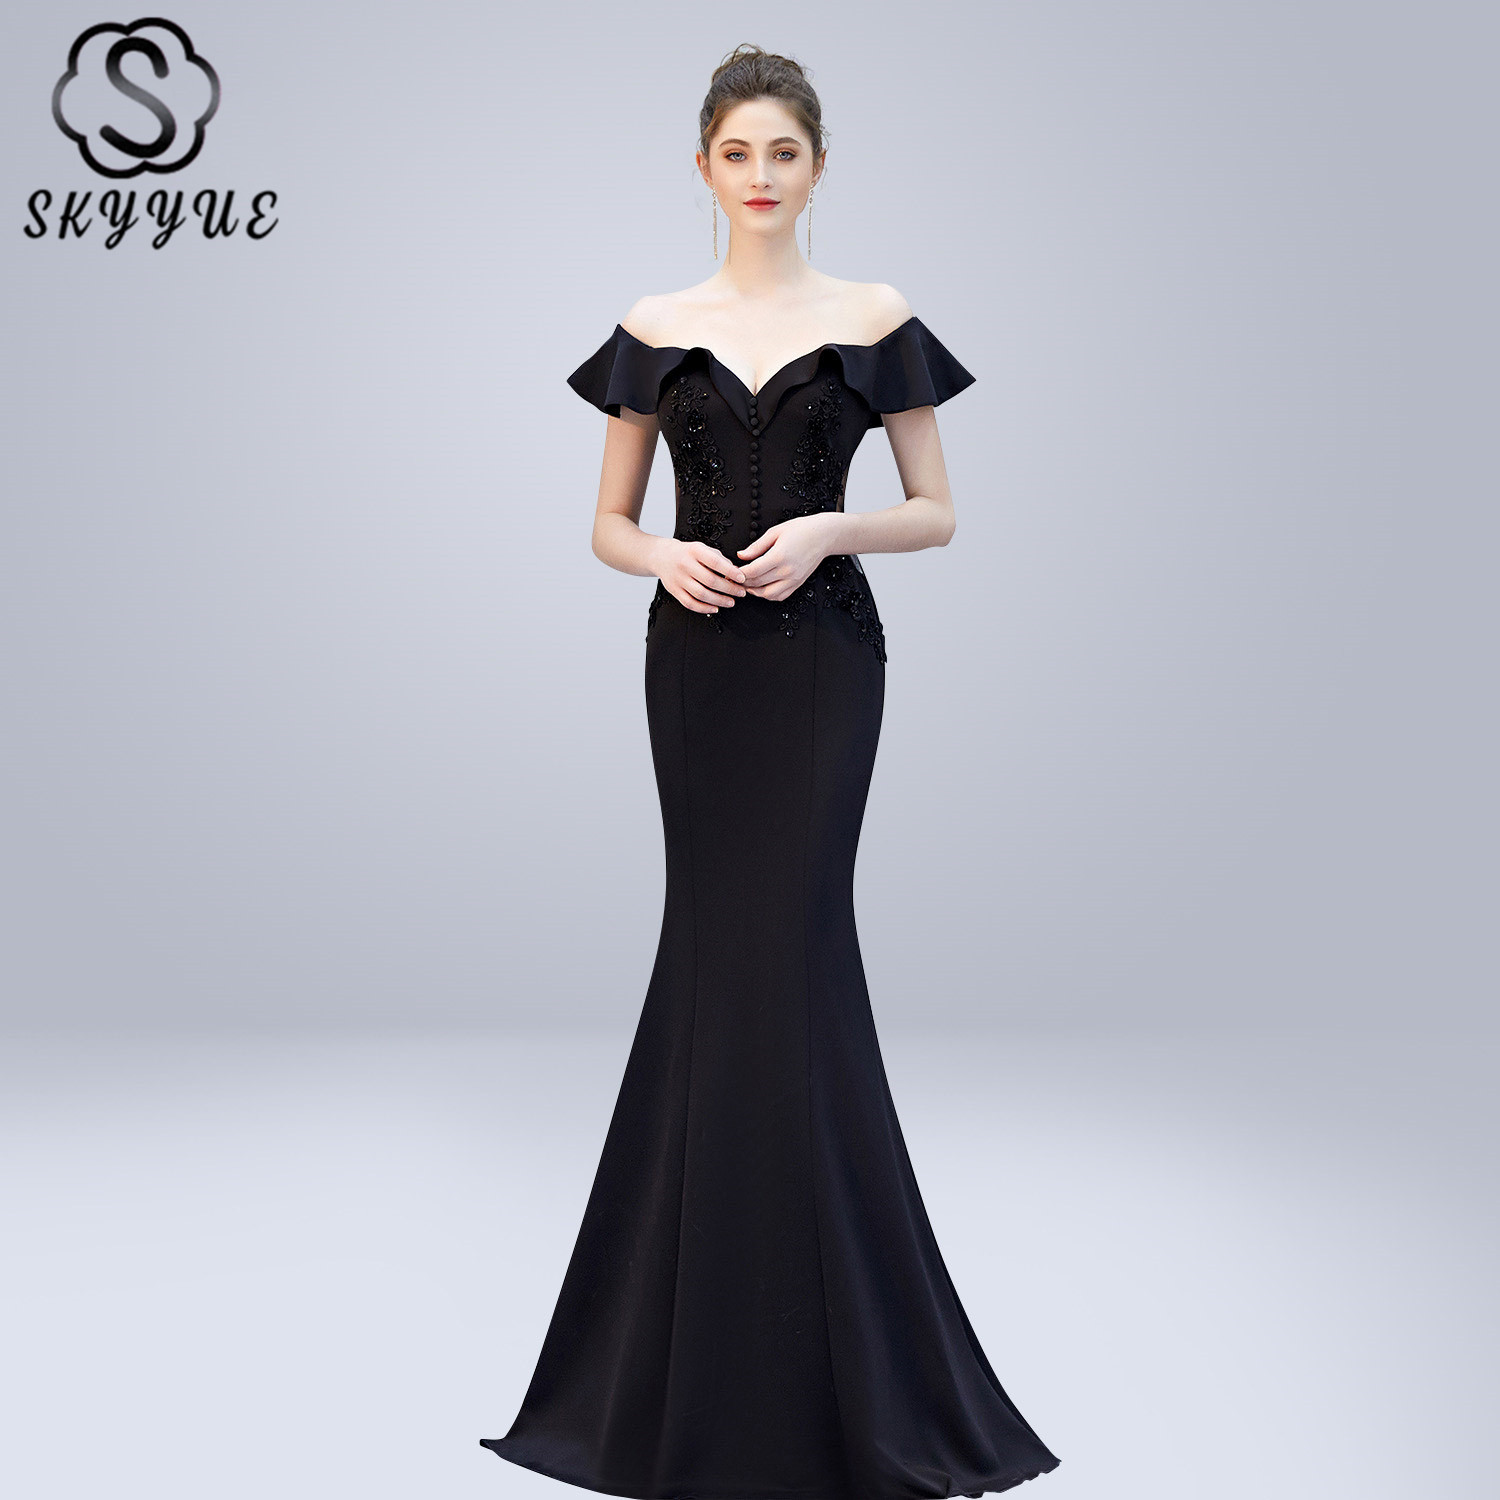 Skyyue   Evening     Dress   V-neck Crystal Women Party   Dresses   Backless Zipper Robe De Soiree 2019 Off The Shoulder Formal Gowns C270